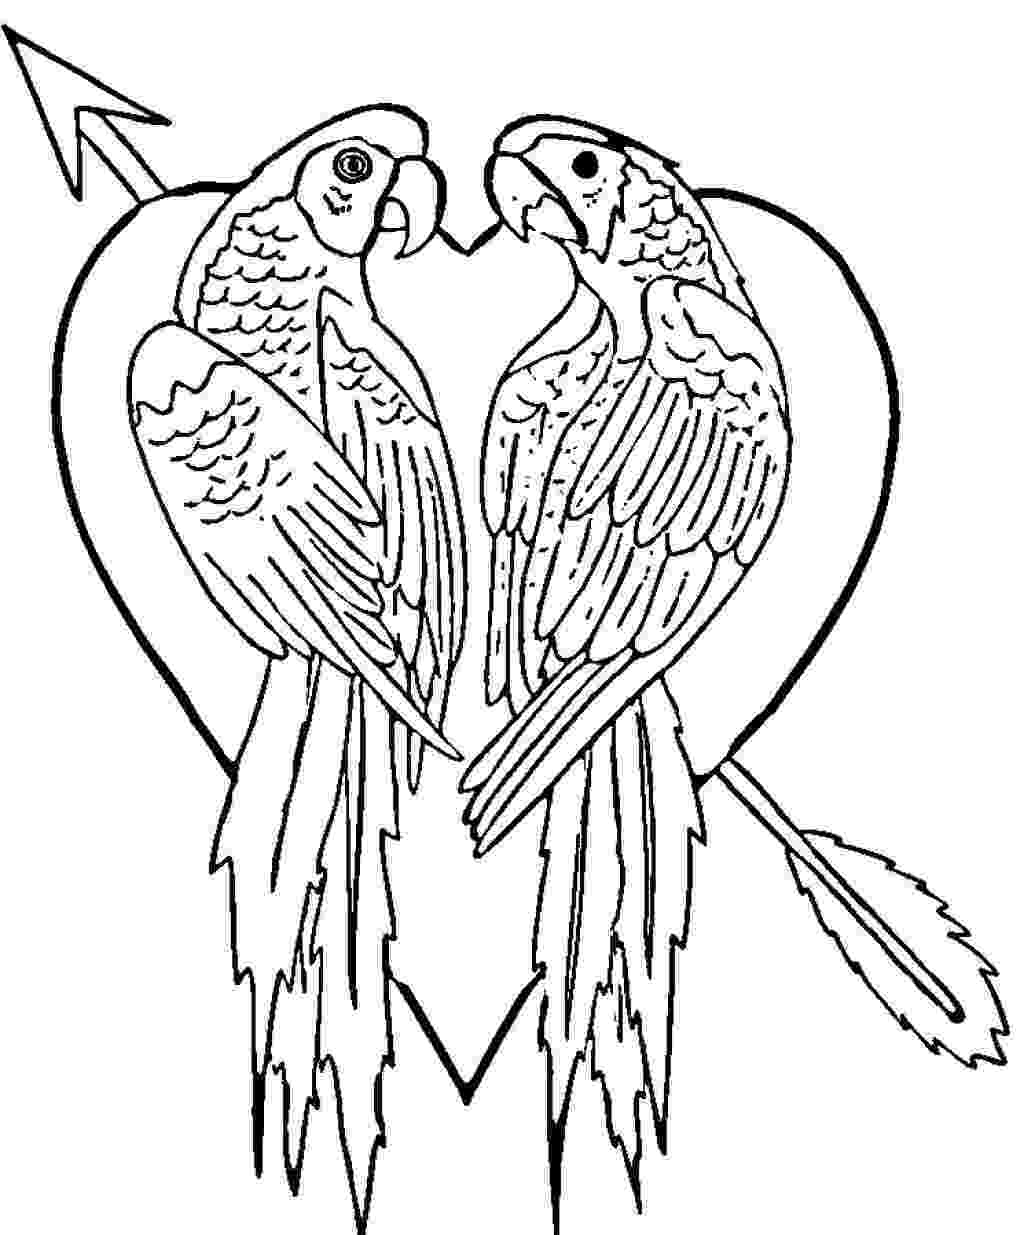 coloring pages parrot free printable parrot coloring pages for kids pages coloring parrot 1 1